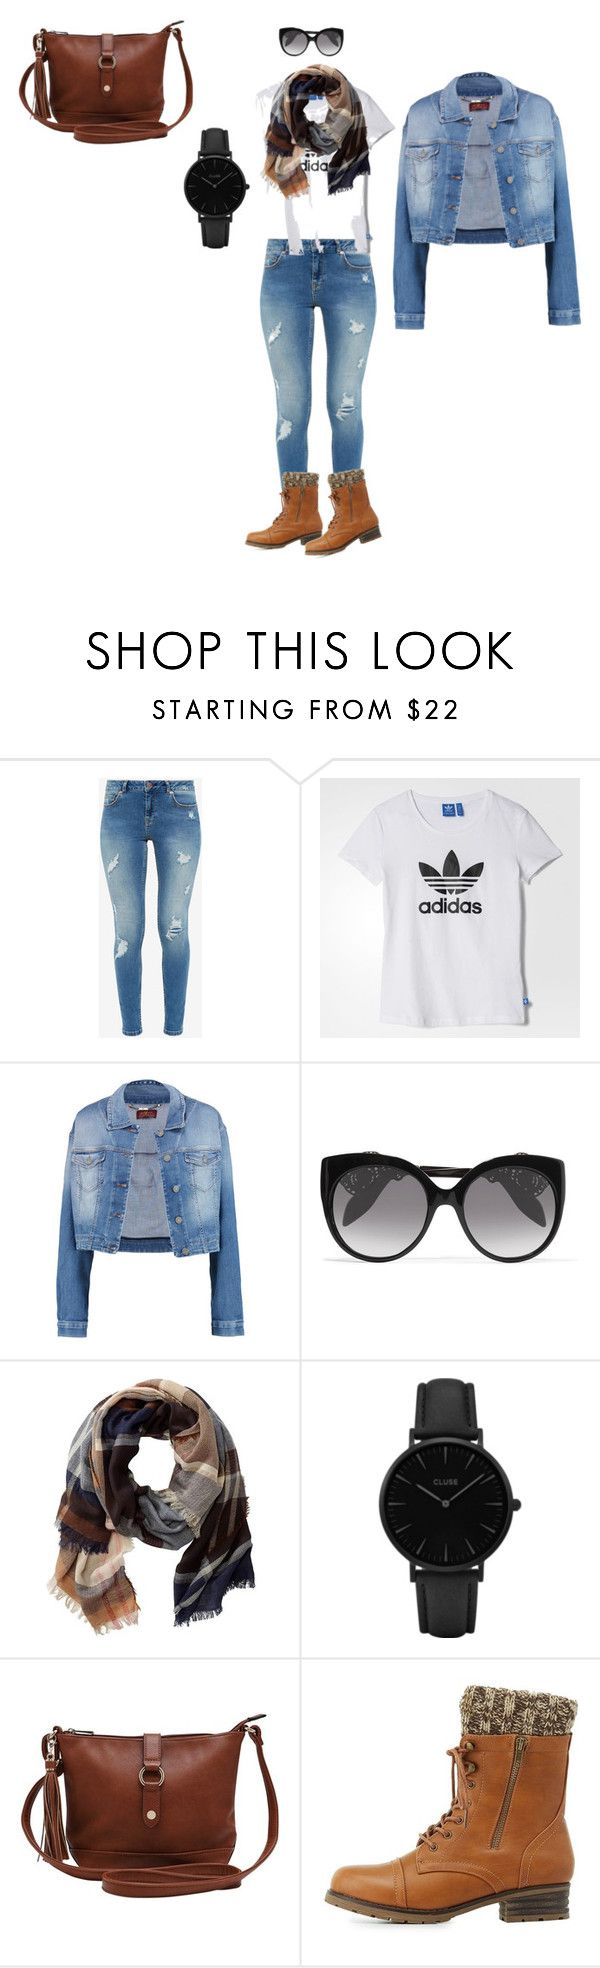 """Women Perfect Set"" by tada-selo123 ❤ liked on Polyvore featuring Ted Baker, adidas, 7 For All Mankind, Alexander McQueen, TravelSmith, CLUSE, M&Co and Charlotte Russe"